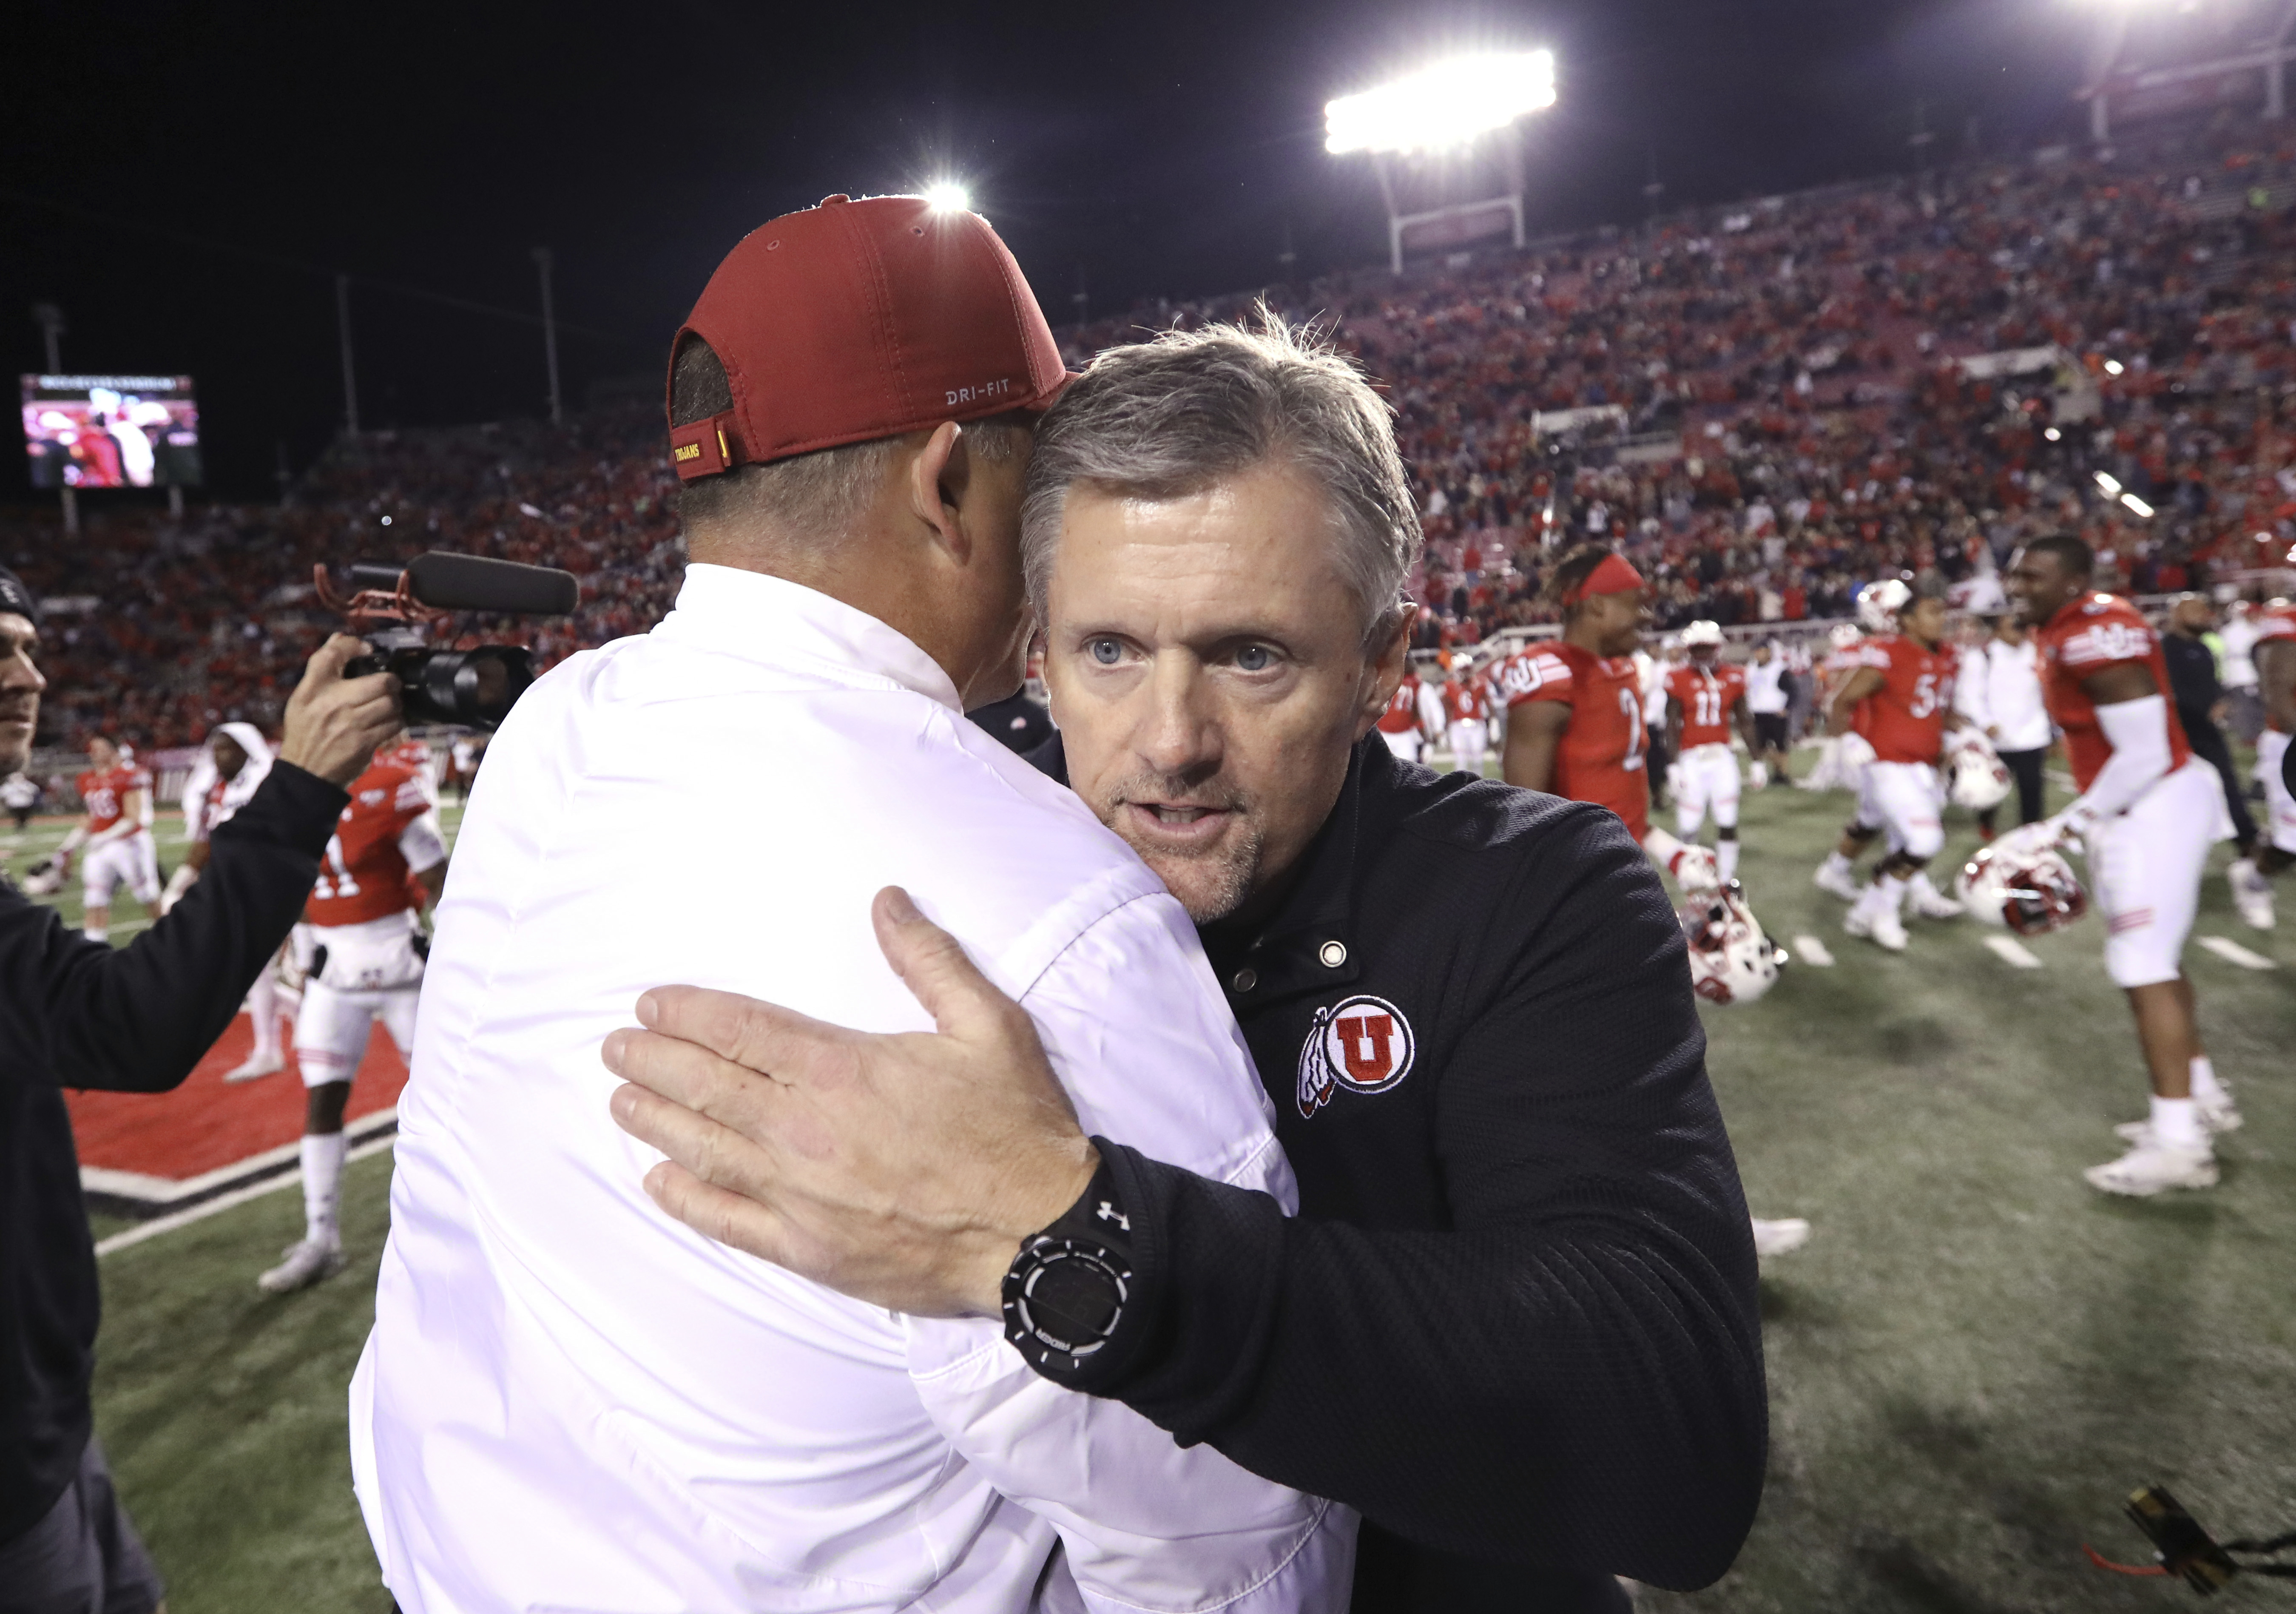 Utah head coach Kyle Whittingham, right, shakes hands with USC head coach Clay Helton following their game, Oct. 20, 2018.